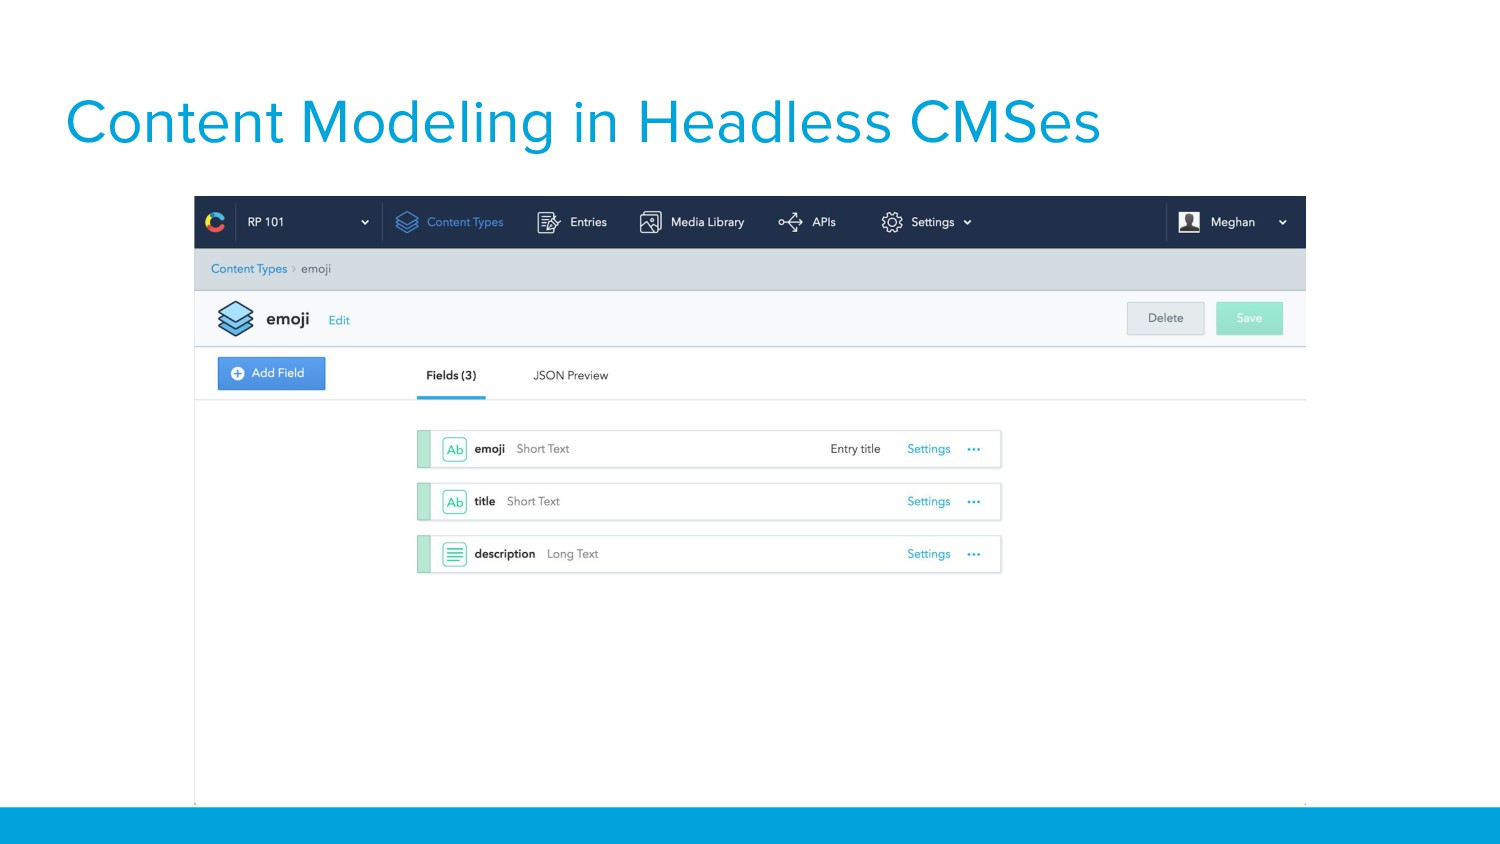 Content Modeling in Headless CMSes